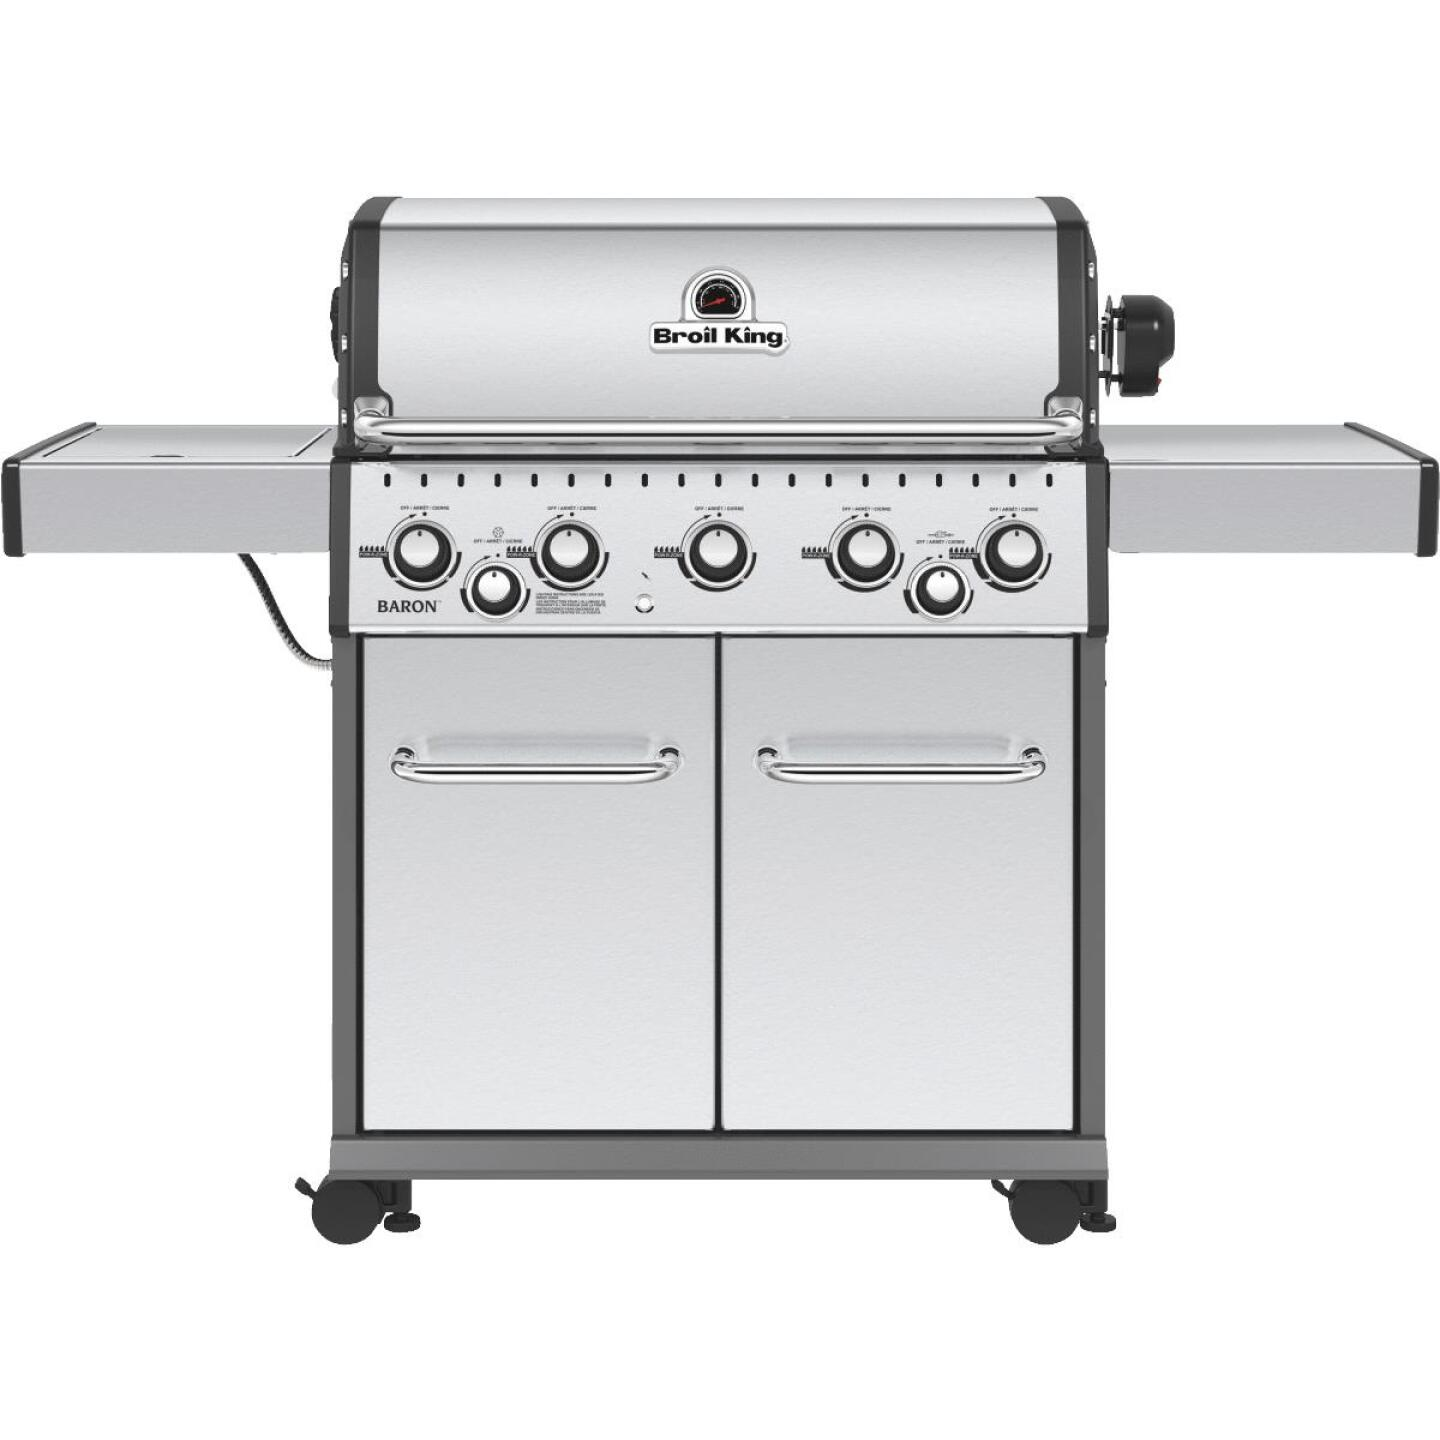 Broil King Baron S590 5-Burner Stainless Steel 50,000-BTU LP Gas Grill with 10,000-BTU Side Burner Image 1